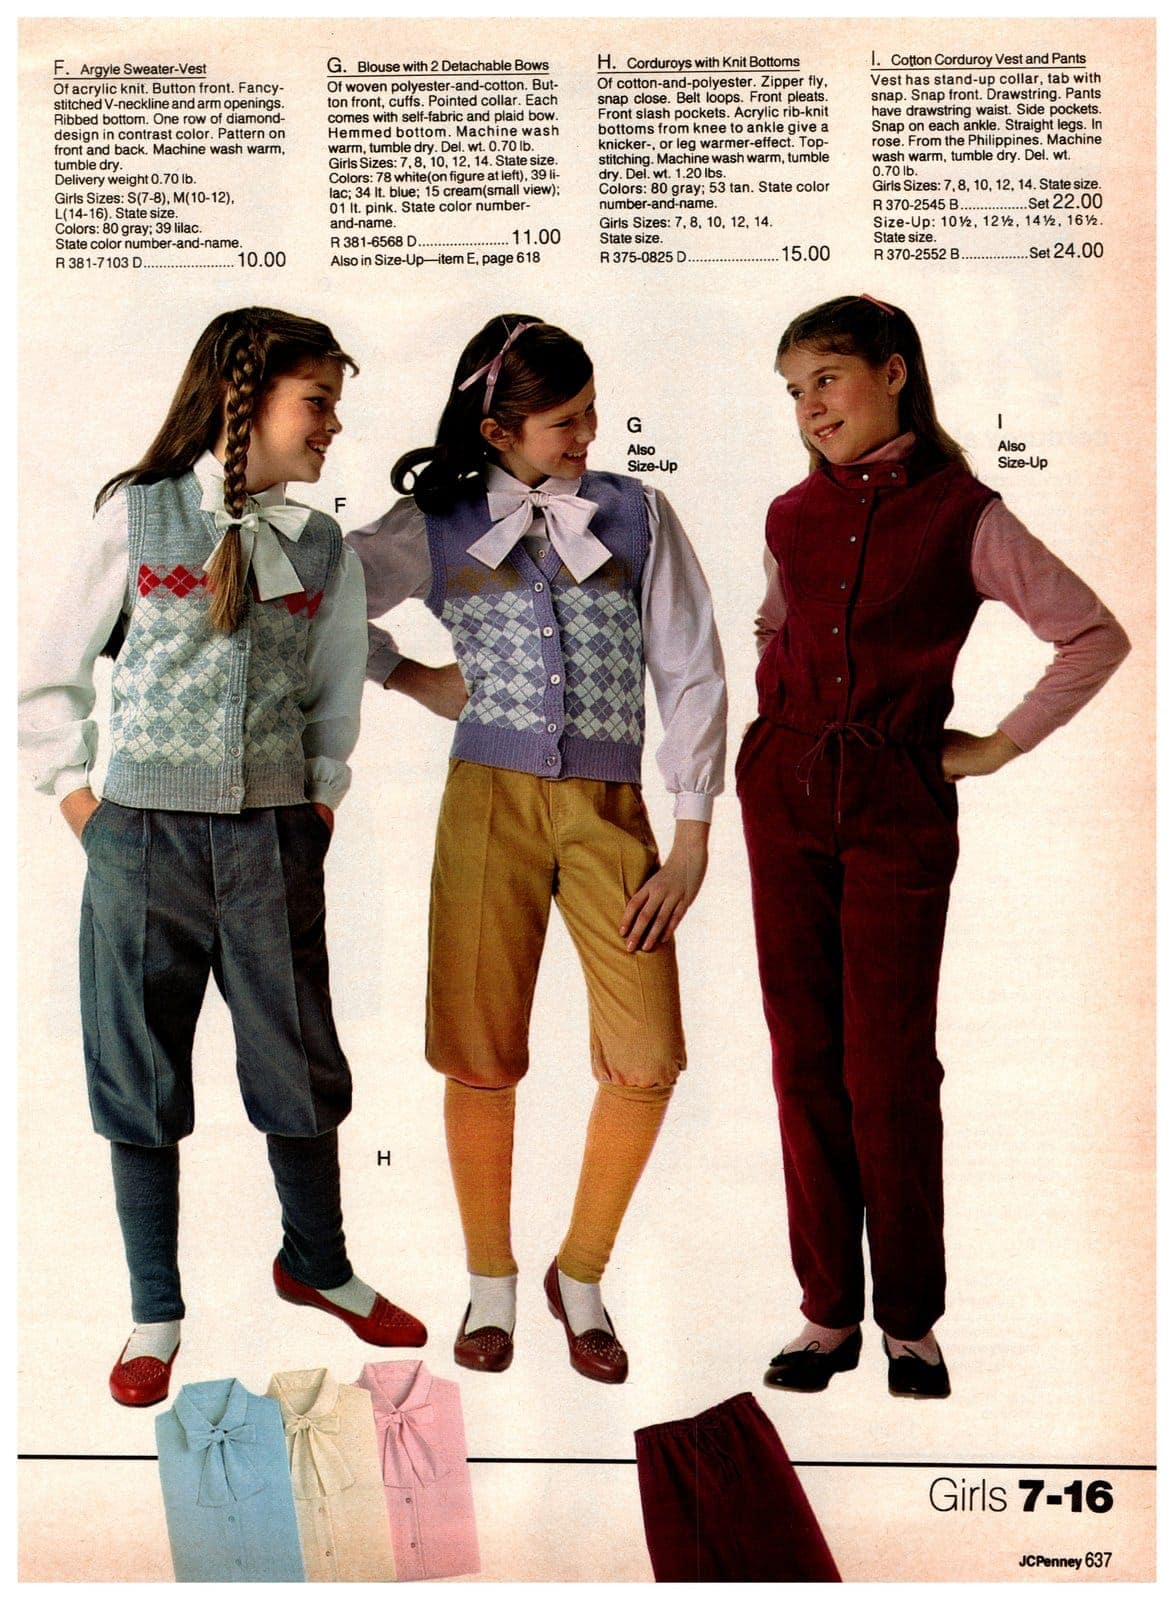 The inexplicable '80s revival of pseudo antique newsboy-style pants - for girls